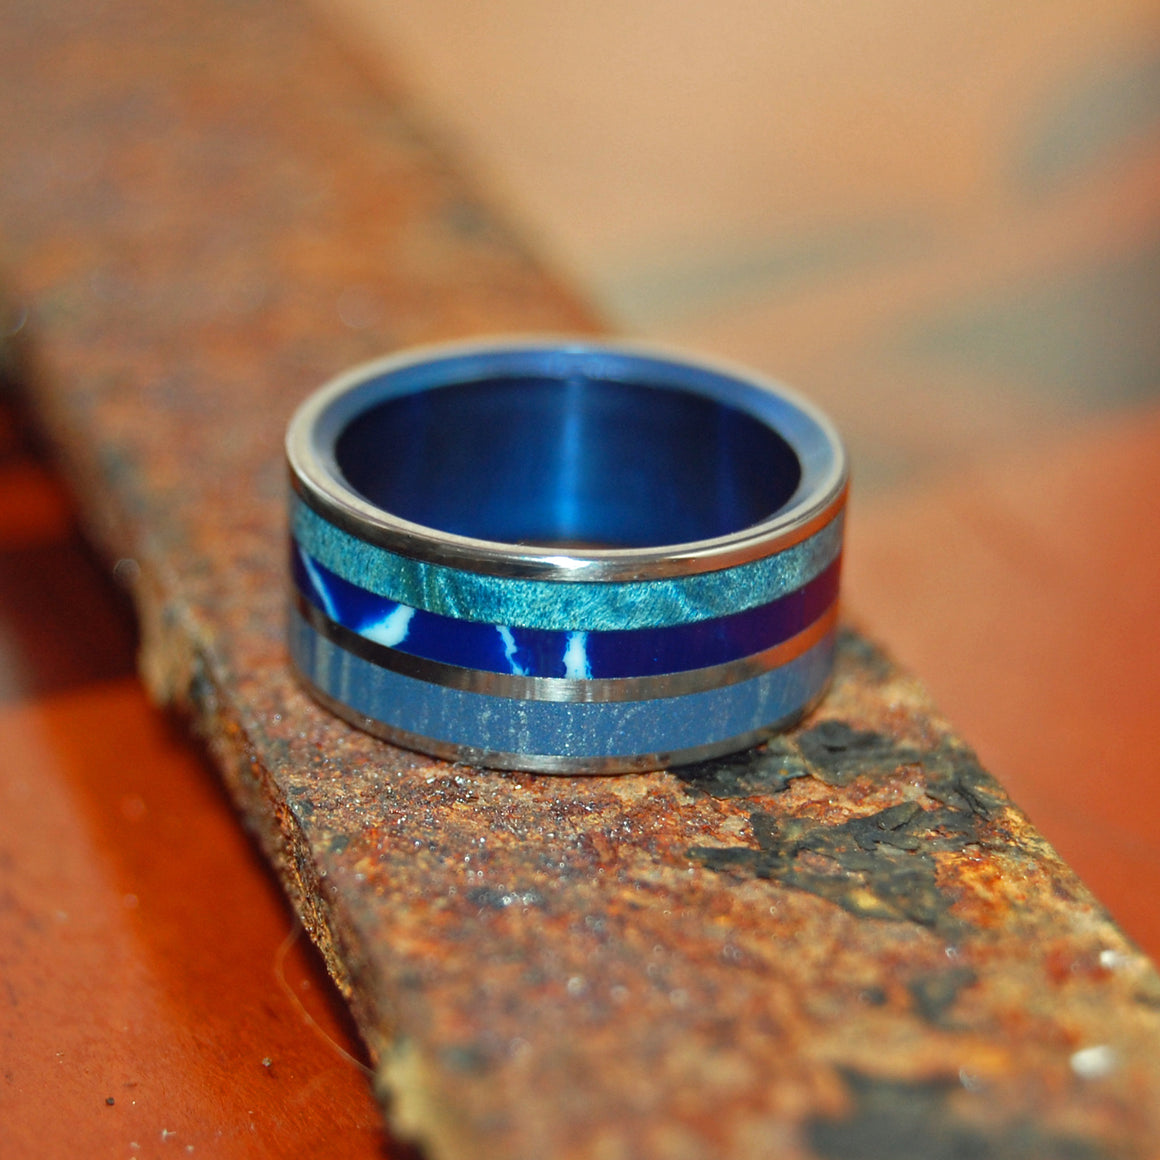 THE SEA HAS MANY MOODS | M3-Stone-Wood Titanium Wedding Bands - Minter and Richter Designs